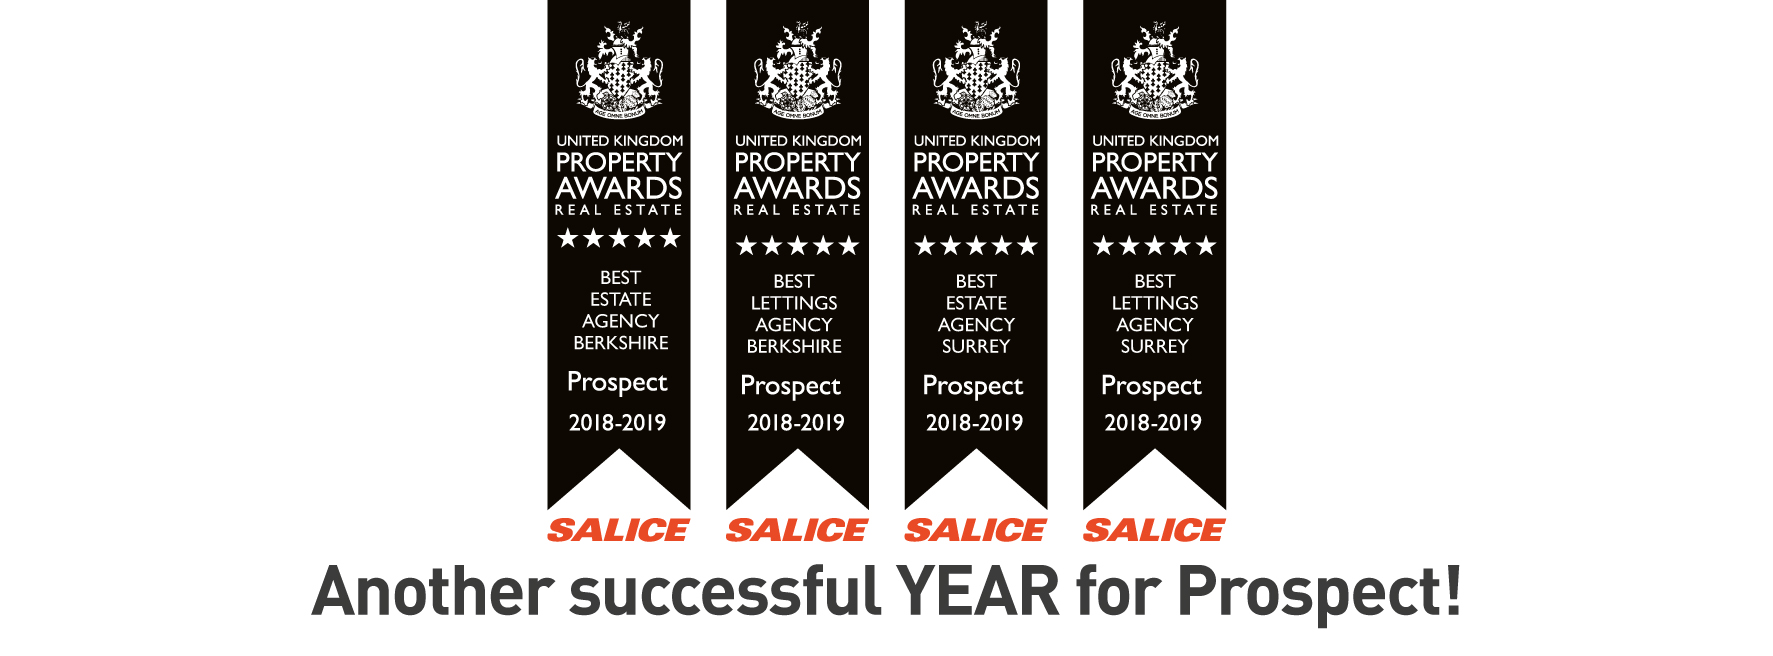 Another successful year for Prospect!